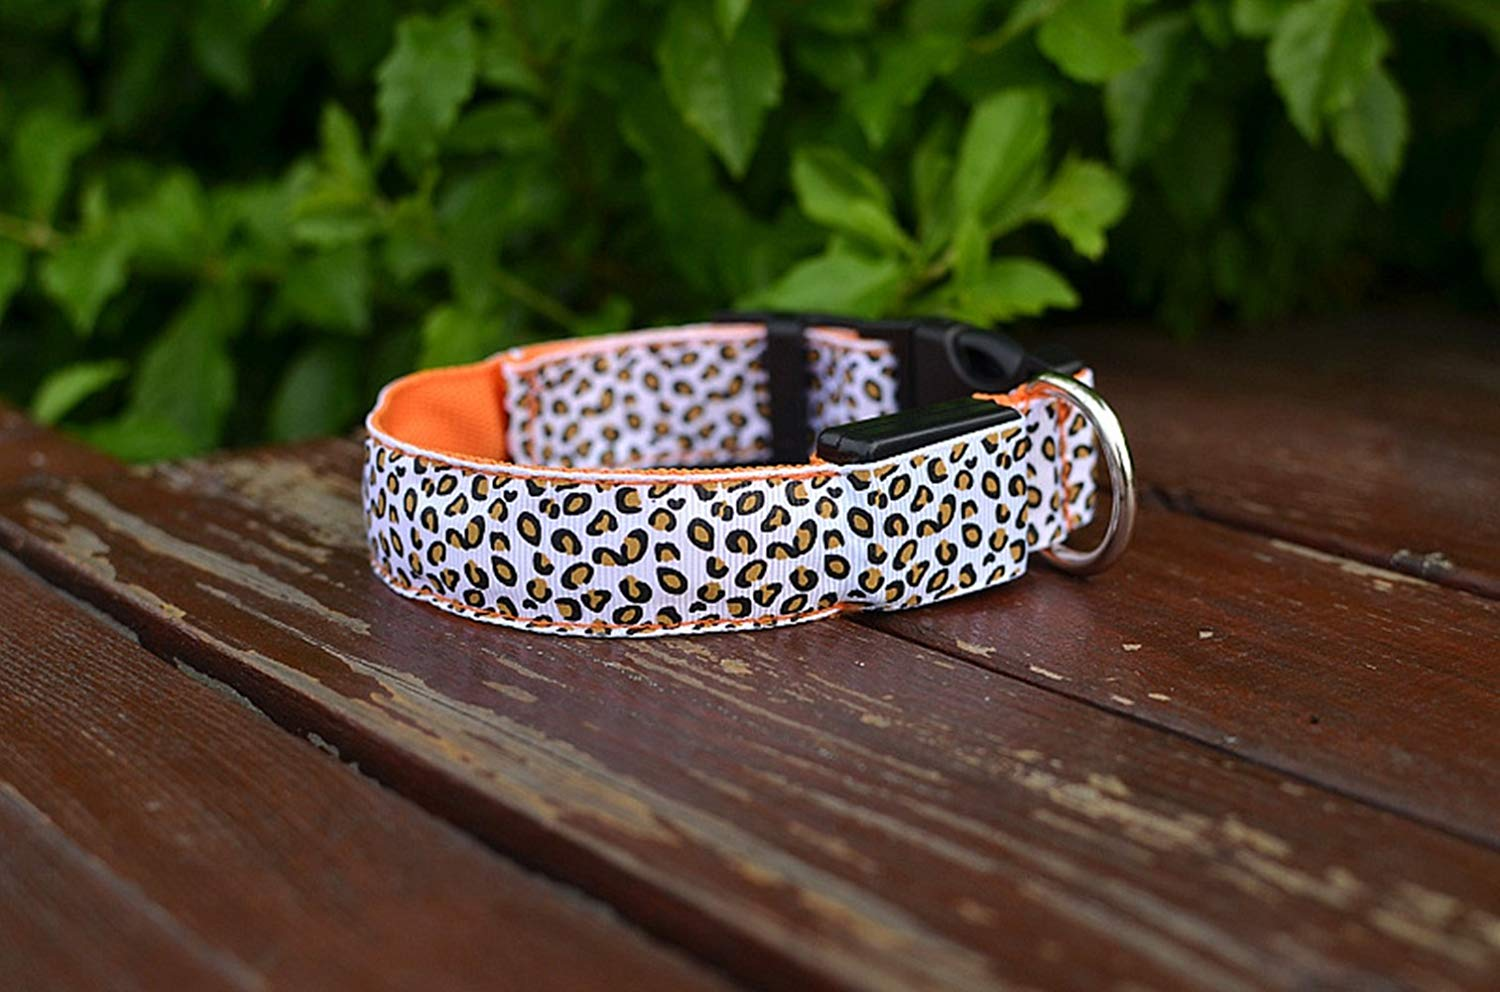 Just_for you - Fashion Nylon Leopard Spots Luminous LED Dog Collar Flashing Glow in Dark Pet Collars Night Light Pet Supplies (Size L).